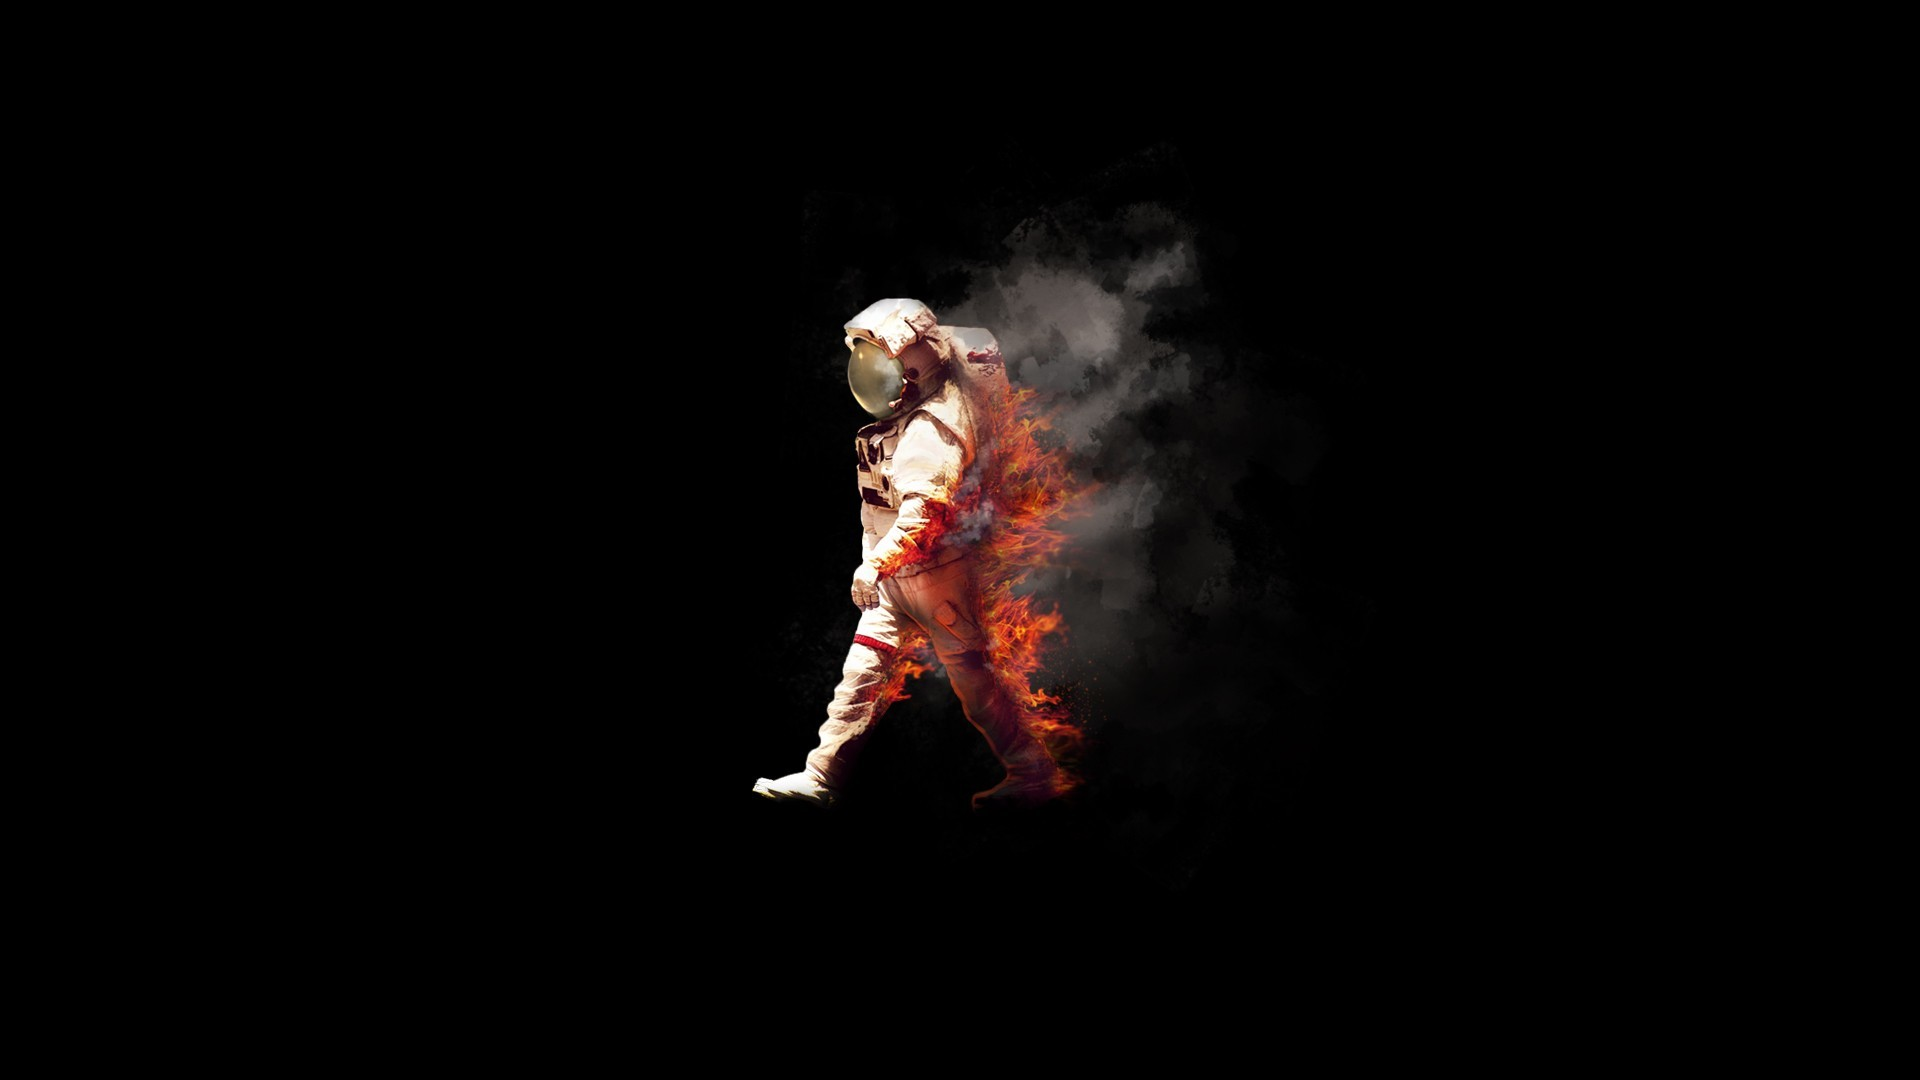 1920x1080 Burning, astronaut, spaceman, fire, NASA, spacesuit